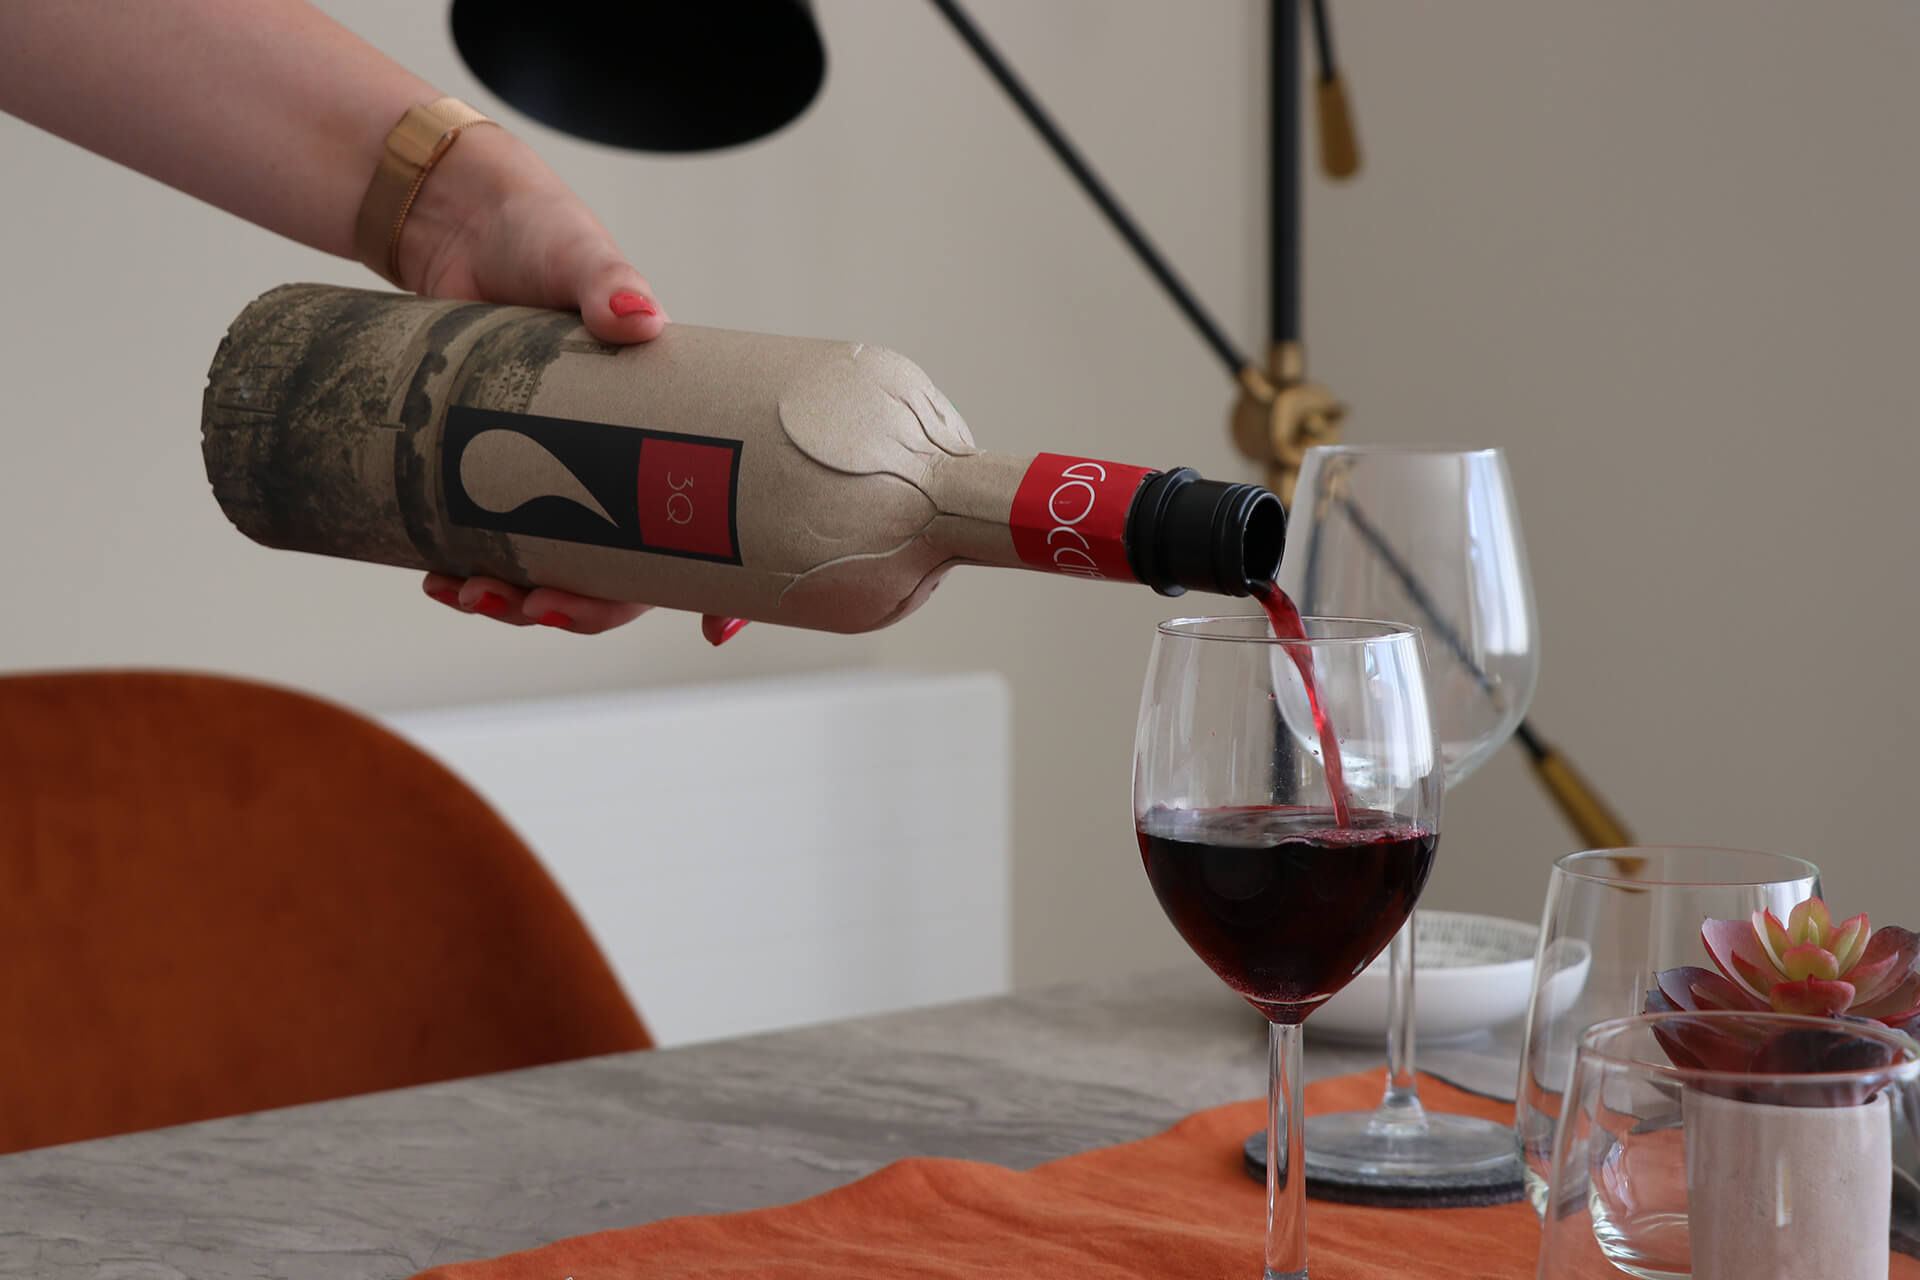 Cheers! Two thirds of wine drinkers would buy wine in a paper bottle as Frugalpac ramps up production to meet global demand